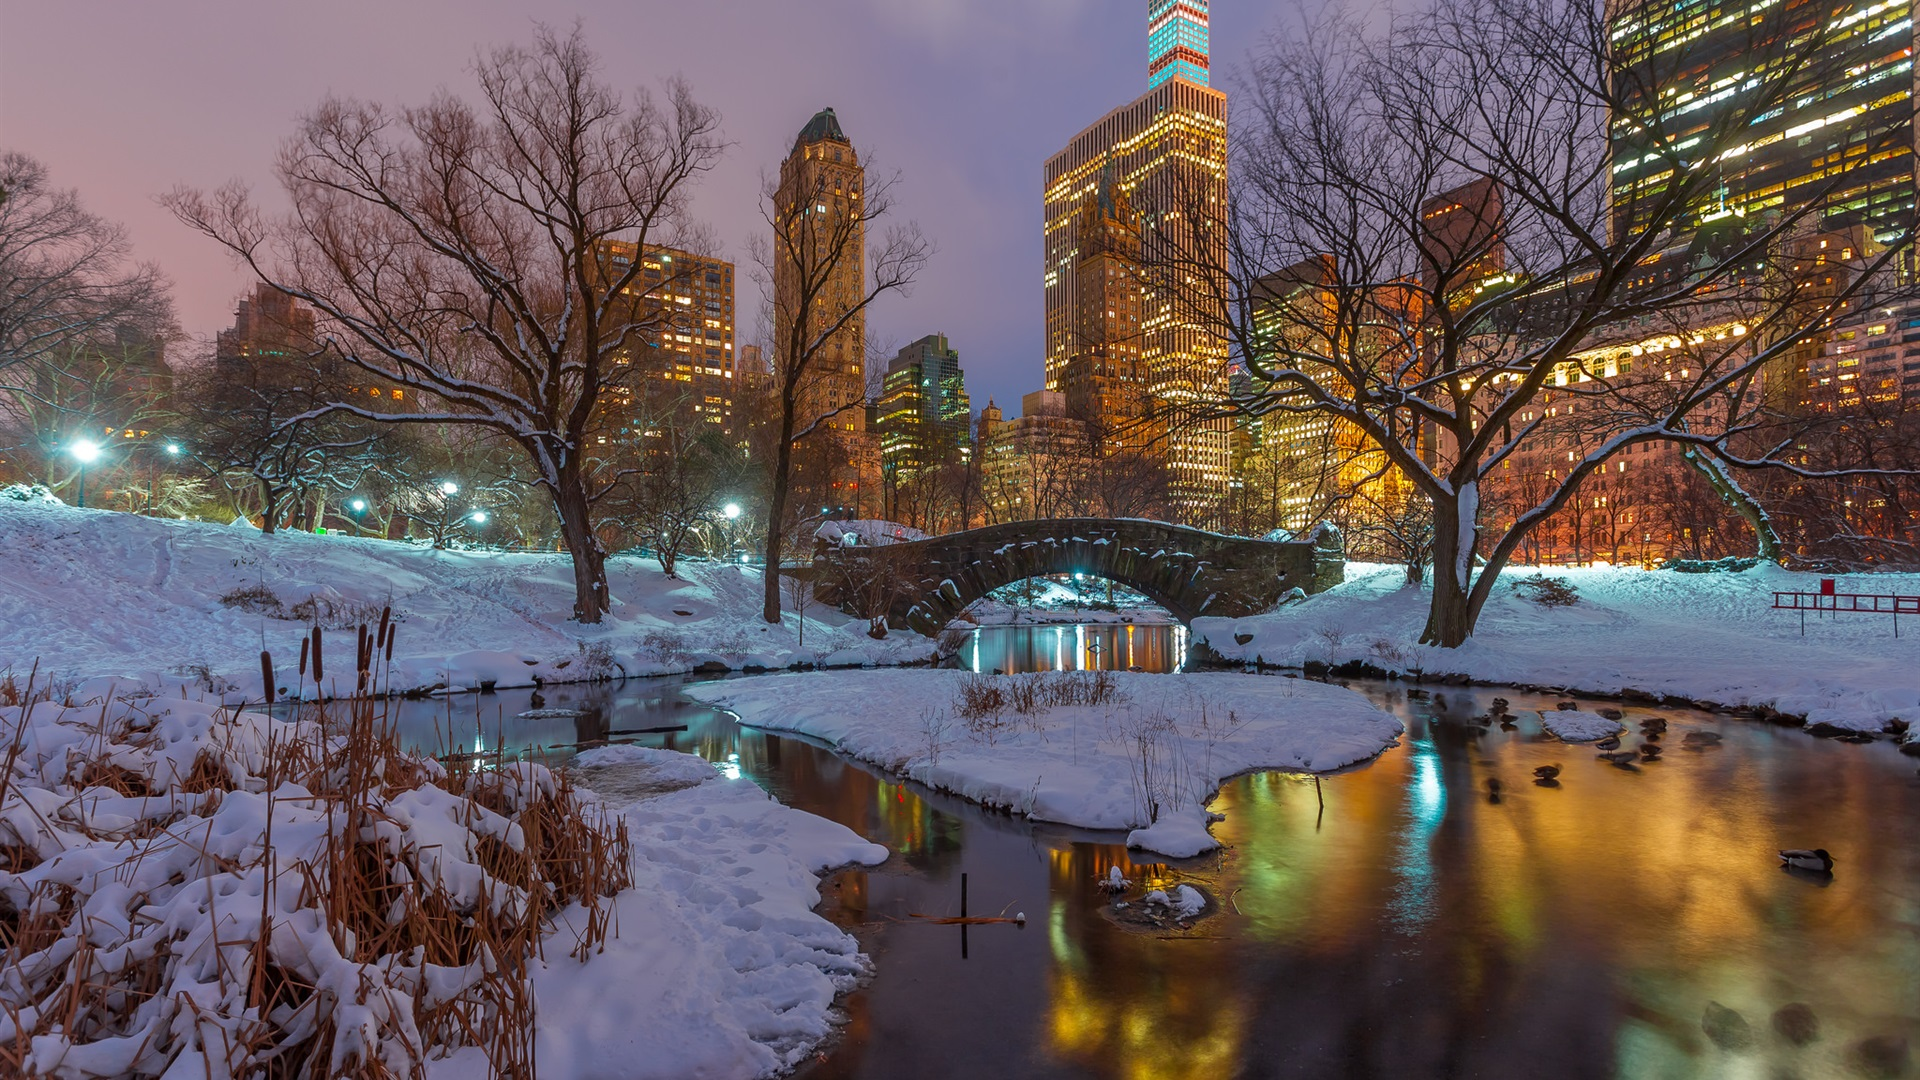 Download wallpaper 1920x1080 new york central park snow for Central park wallpaper